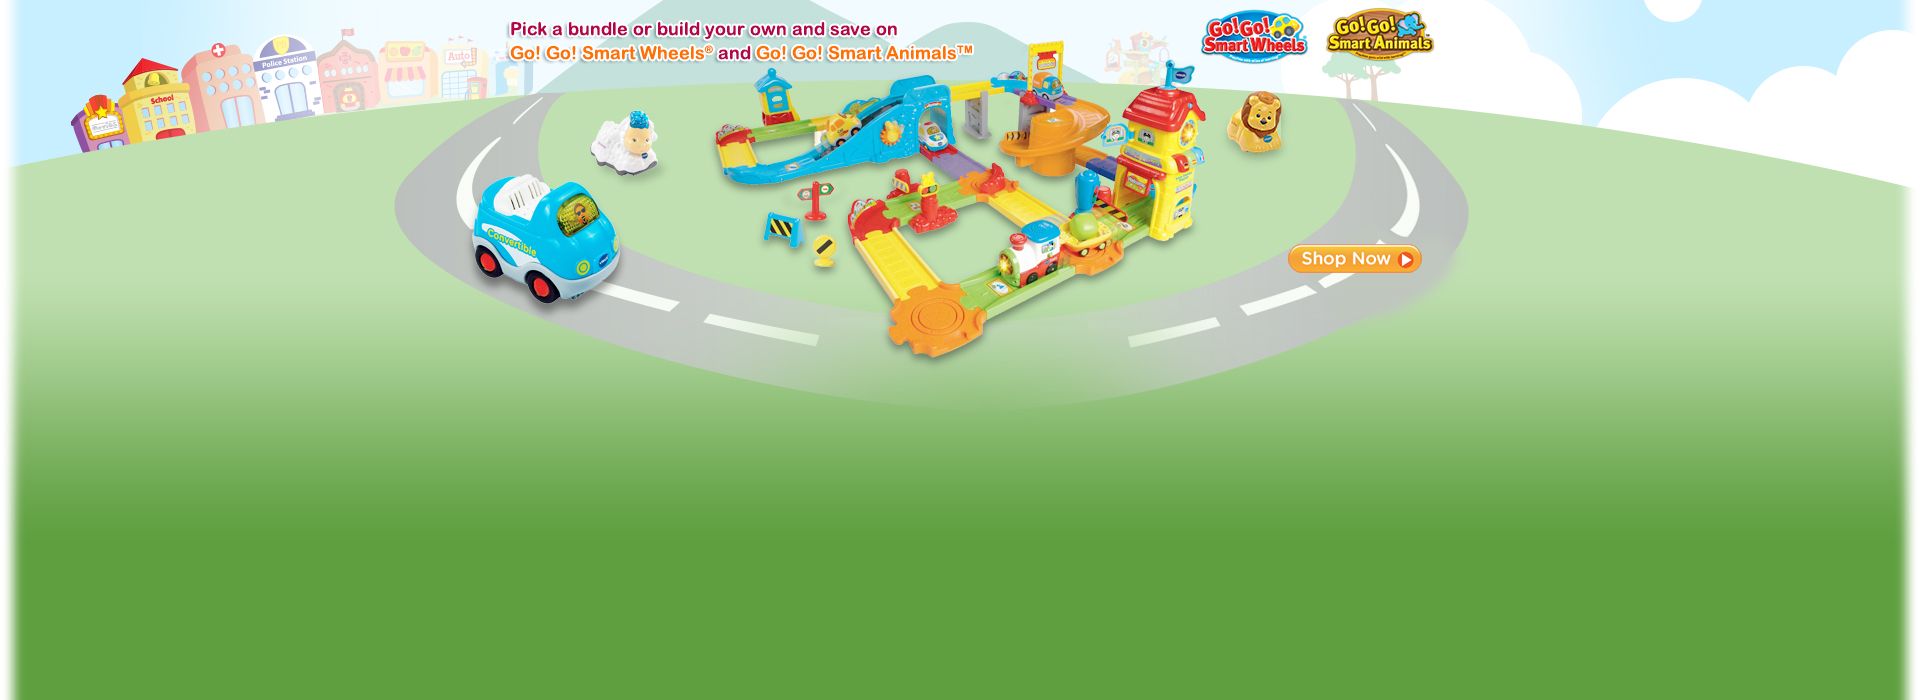 Pick a bundle or build your own and save on Go! Go! Smart Wheels® and Go! Go! Smart Animals™